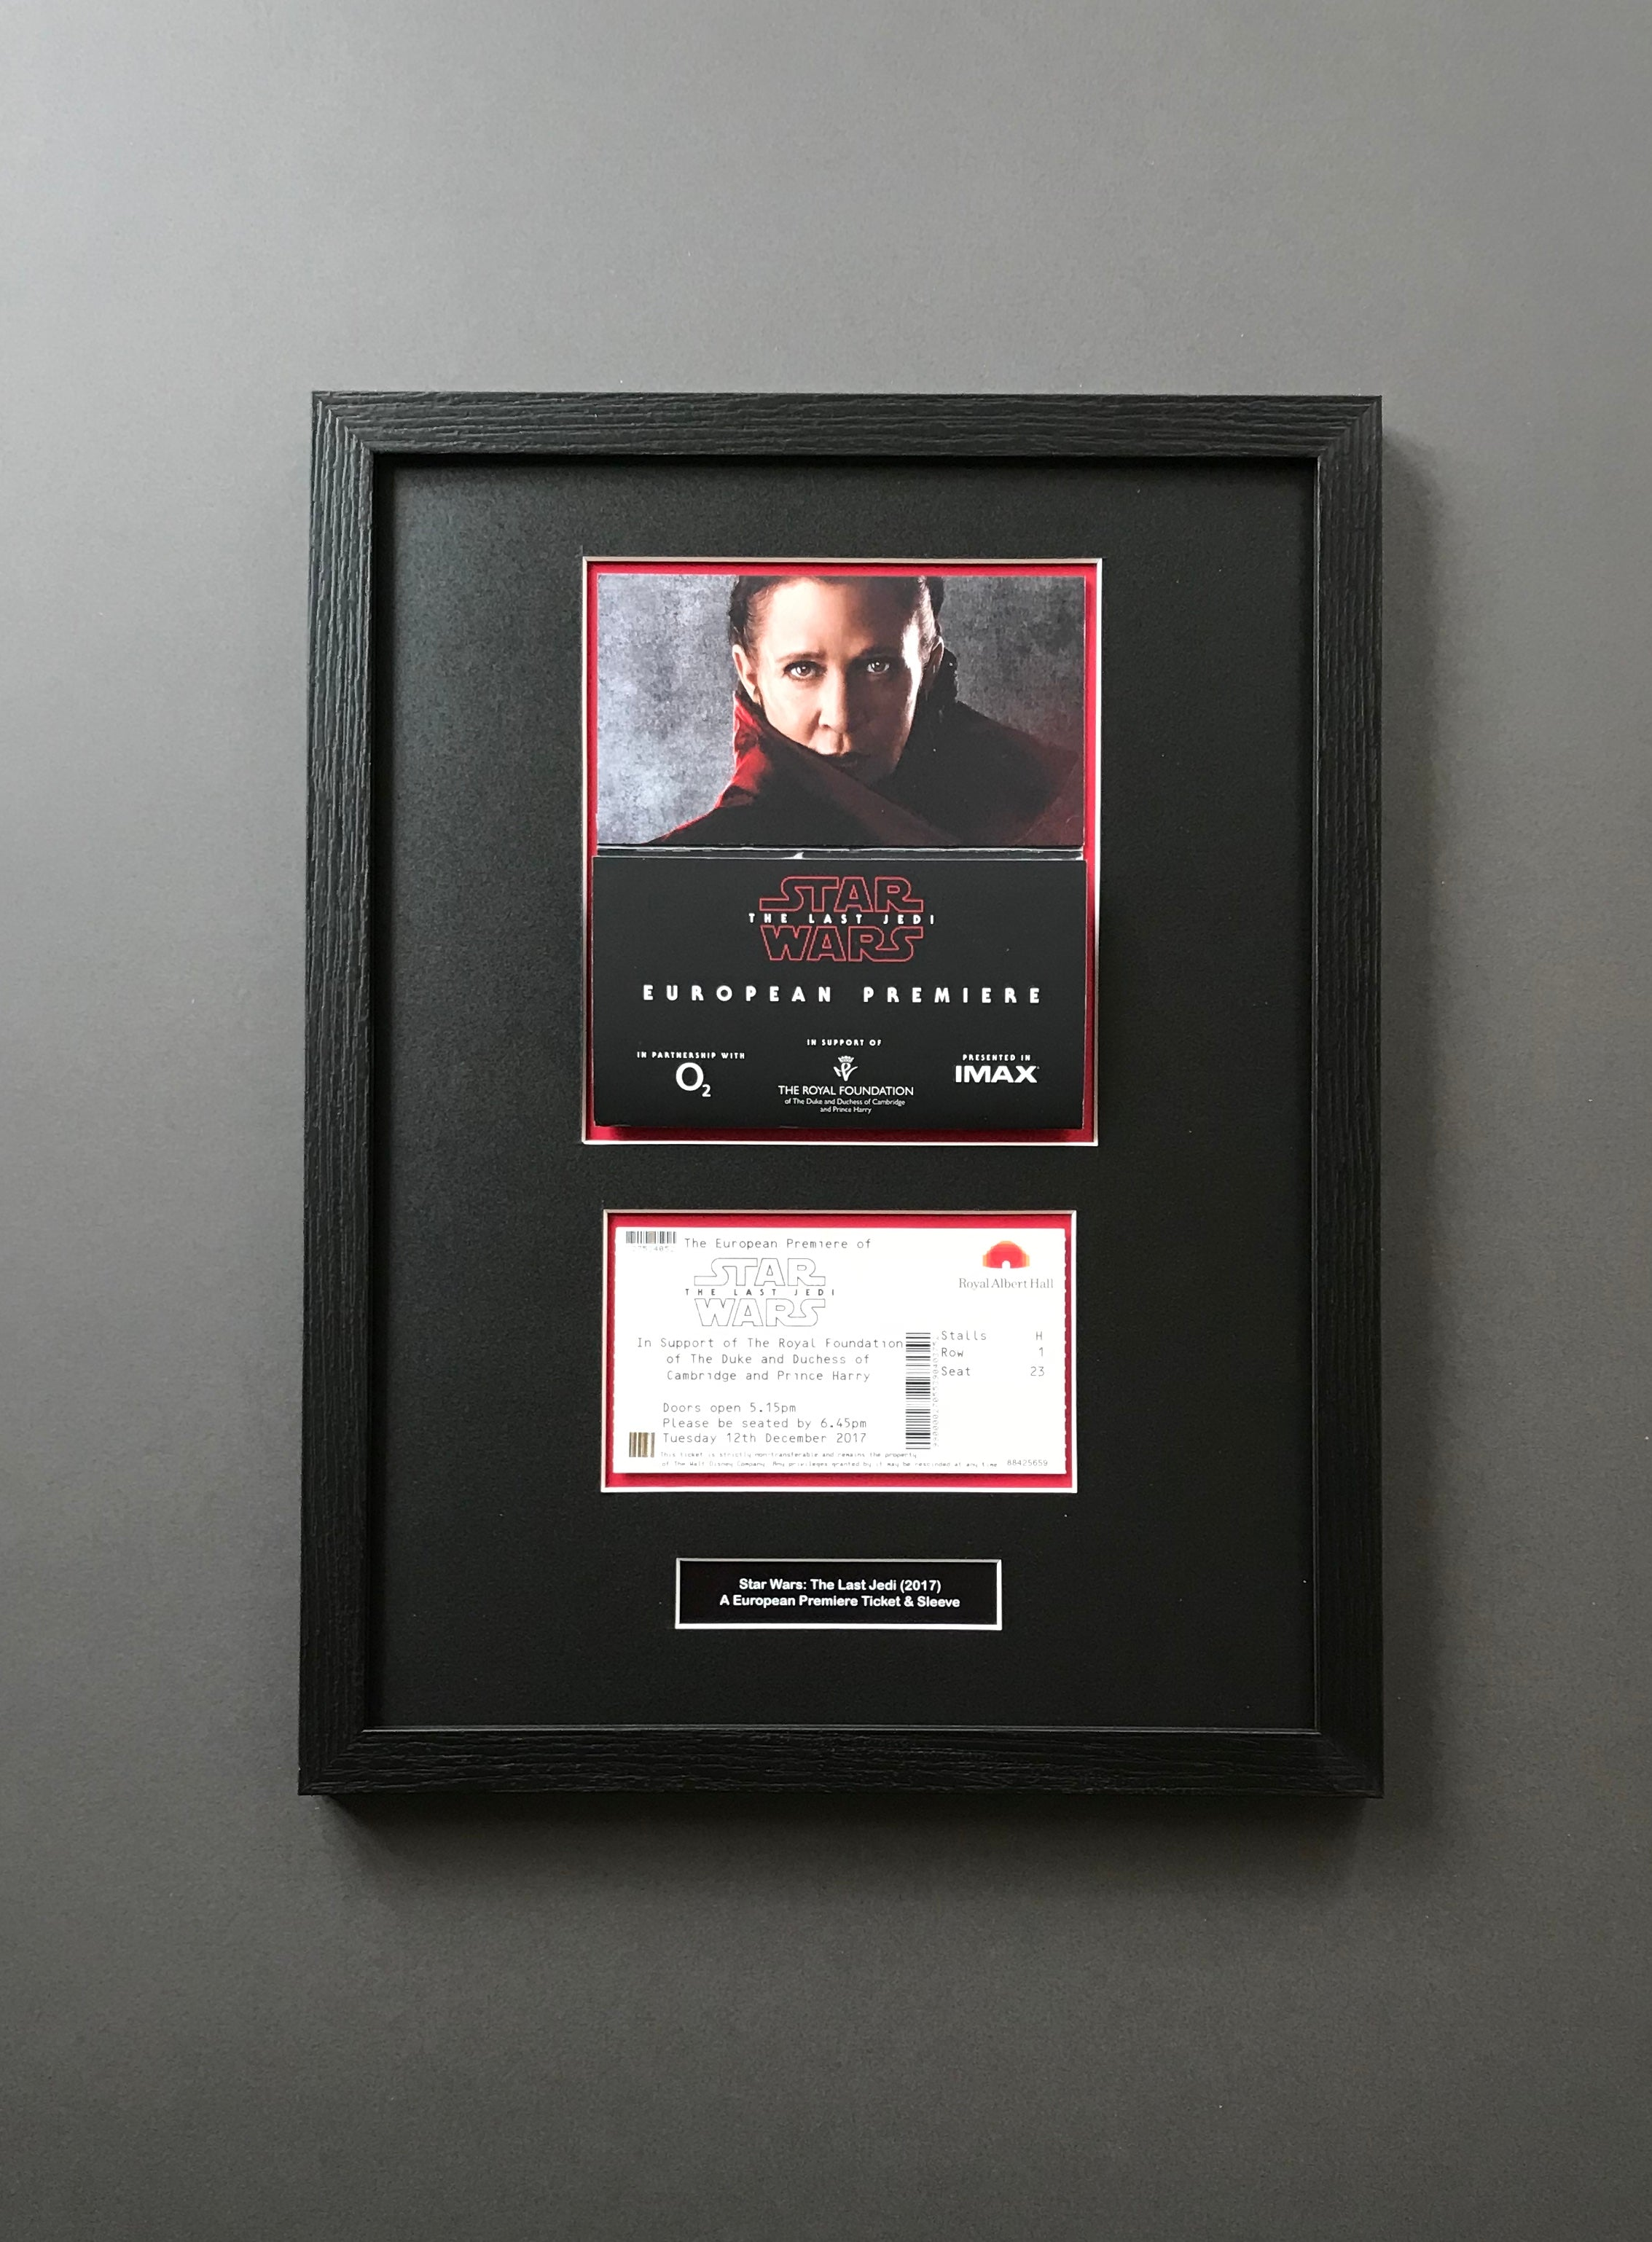 Star Wars: The Last Jedi (2017) - Framed Premiere Ticket & Sleeve - SOLD